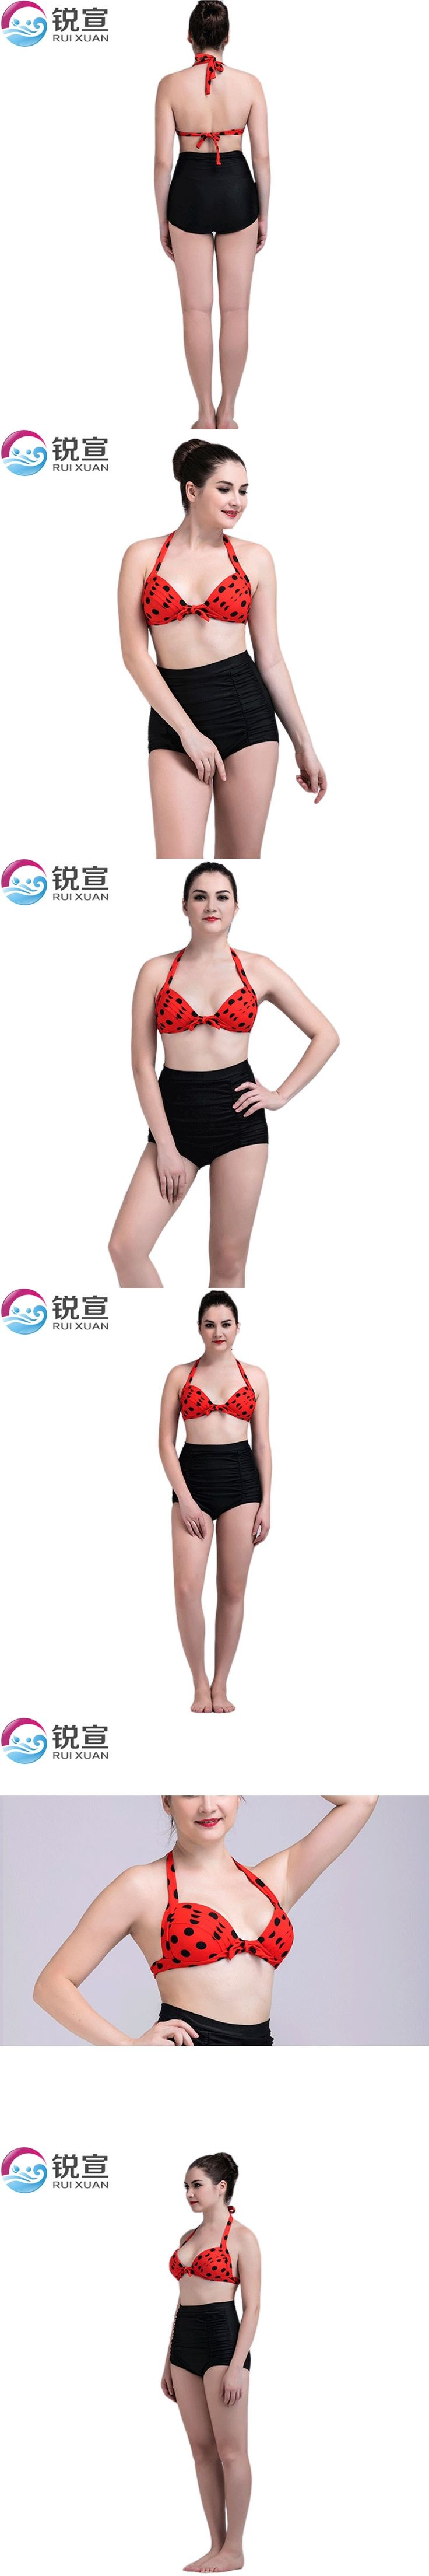 summer XXXL high waist bikini 2017 red large cup dot maillot de bain femme plus size swimwear bandage sexy swimsuit women 143